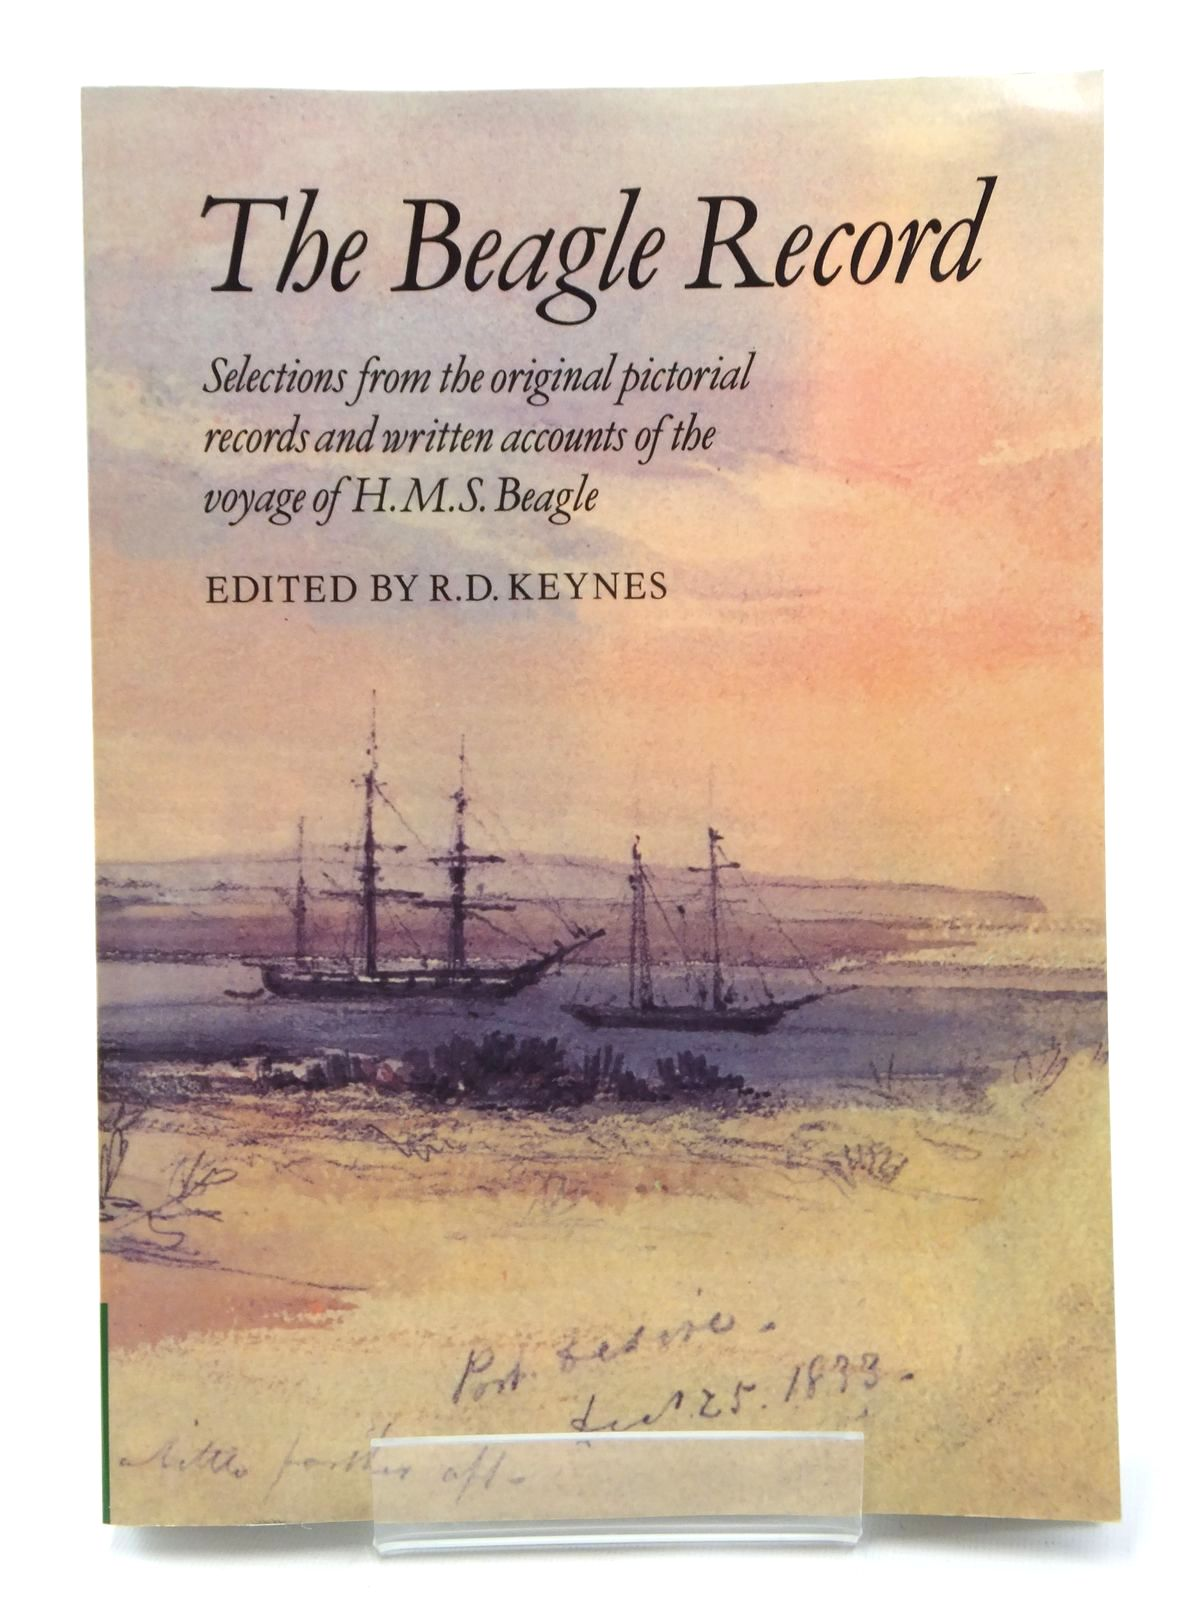 Photo of THE BEAGLE RECORD SELECTIONS FROM THE ORIGINAL PICTORIAL RECORDS AND WRITTEN ACCOUNTS OF THE VOYAGE OF H.M.S. BEAGLE written by Keynes, R.D. published by Cambridge University Press (STOCK CODE: 2123683)  for sale by Stella & Rose's Books